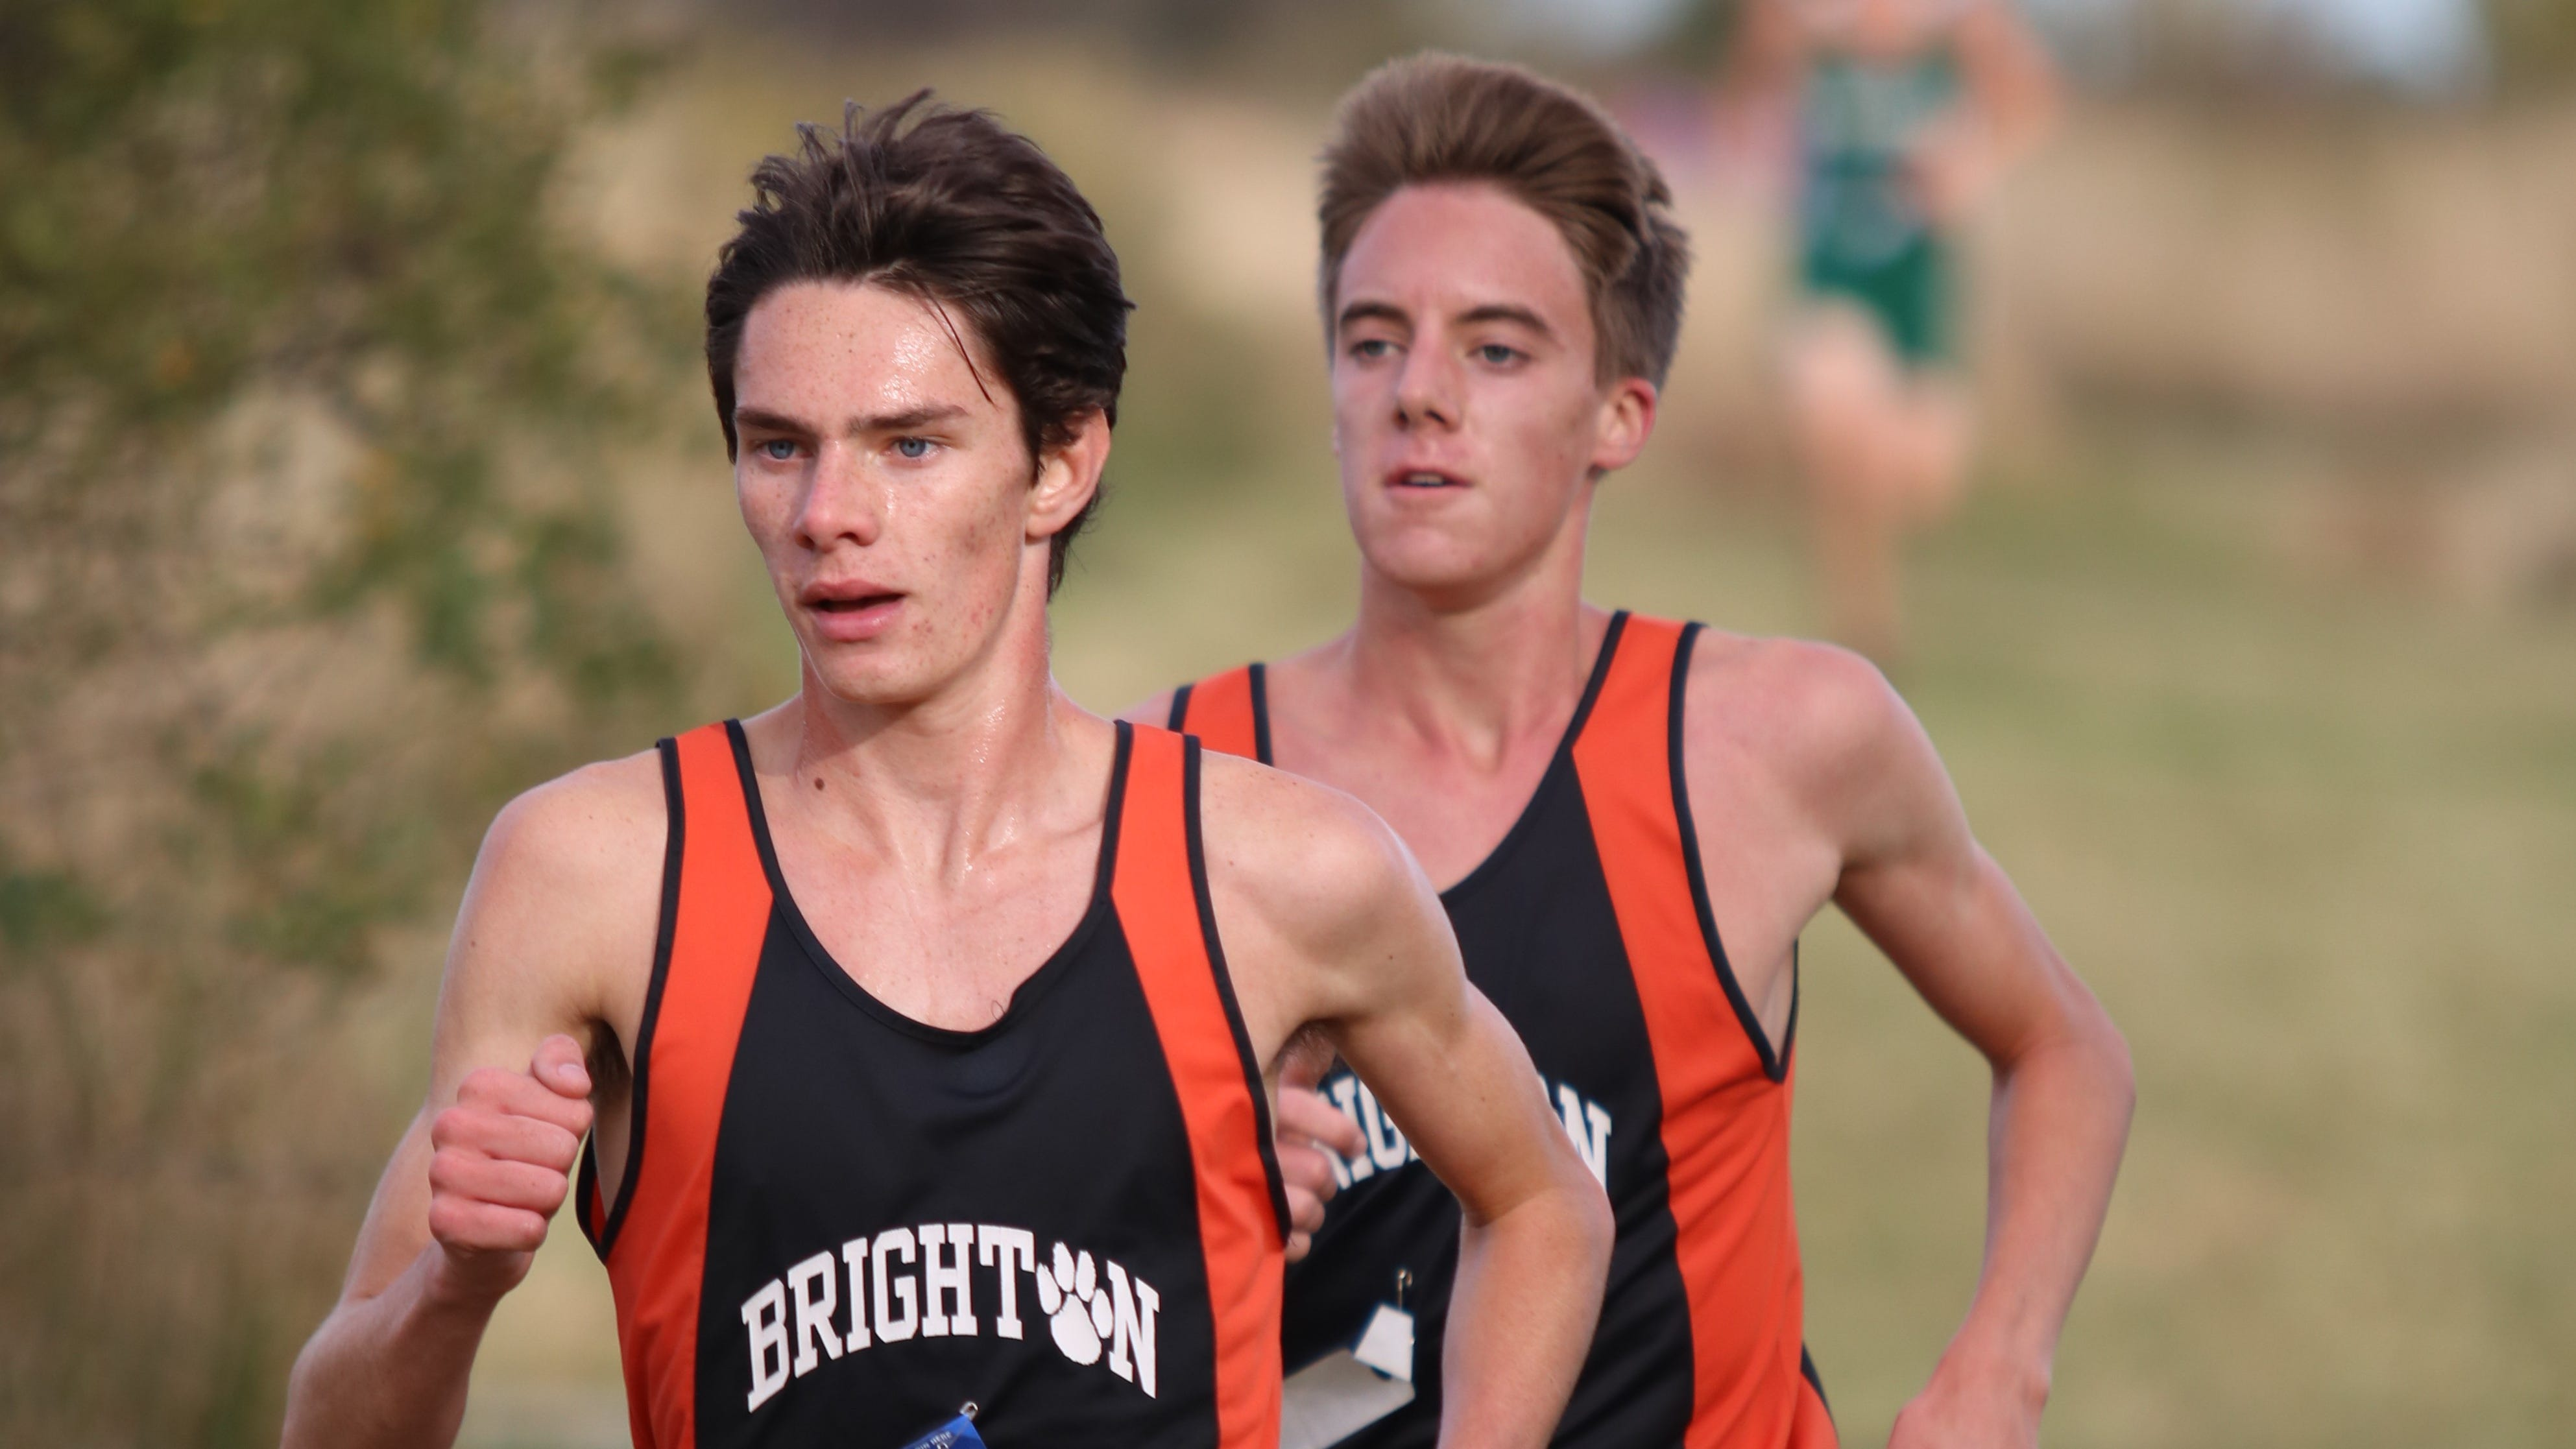 Brighton's Zach Stewart (left) and Jack Spamer (right) broke the school record in the Monroe Jefferson Invitational on Saturday, Sept. 22, 2018.